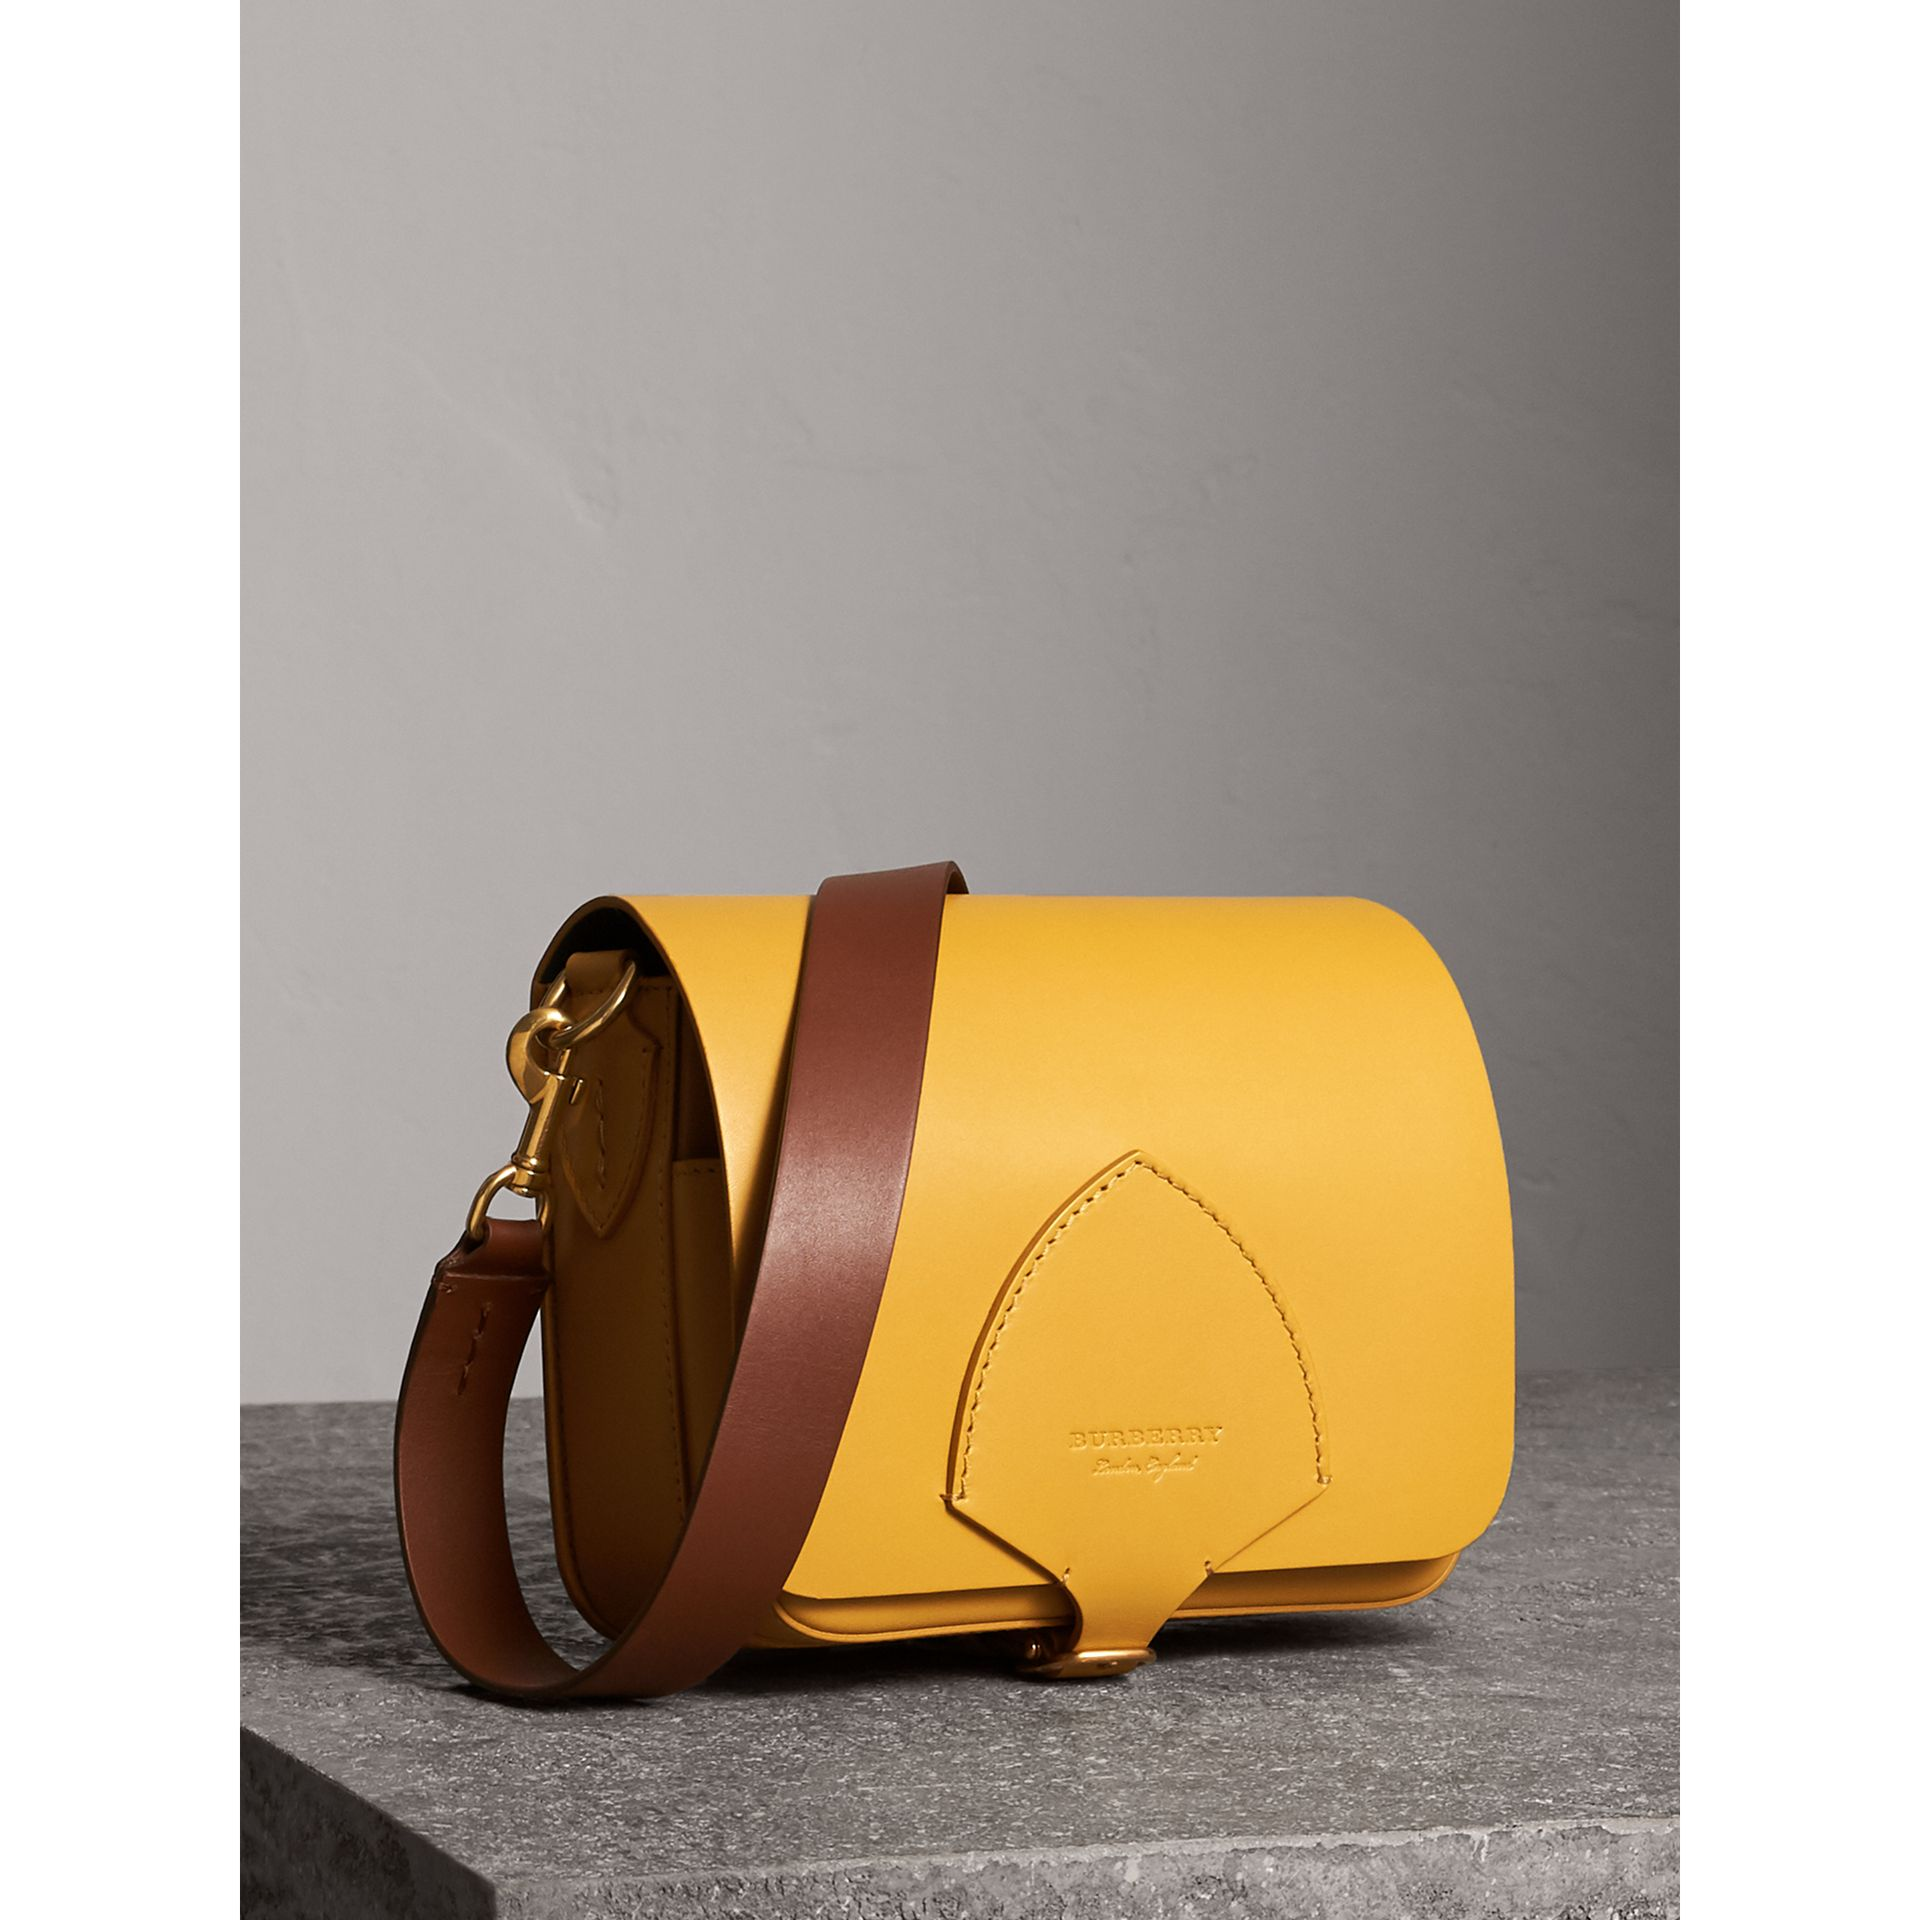 The Square Satchel in Leather in Larch Yellow - Women | Burberry Australia - gallery image 5